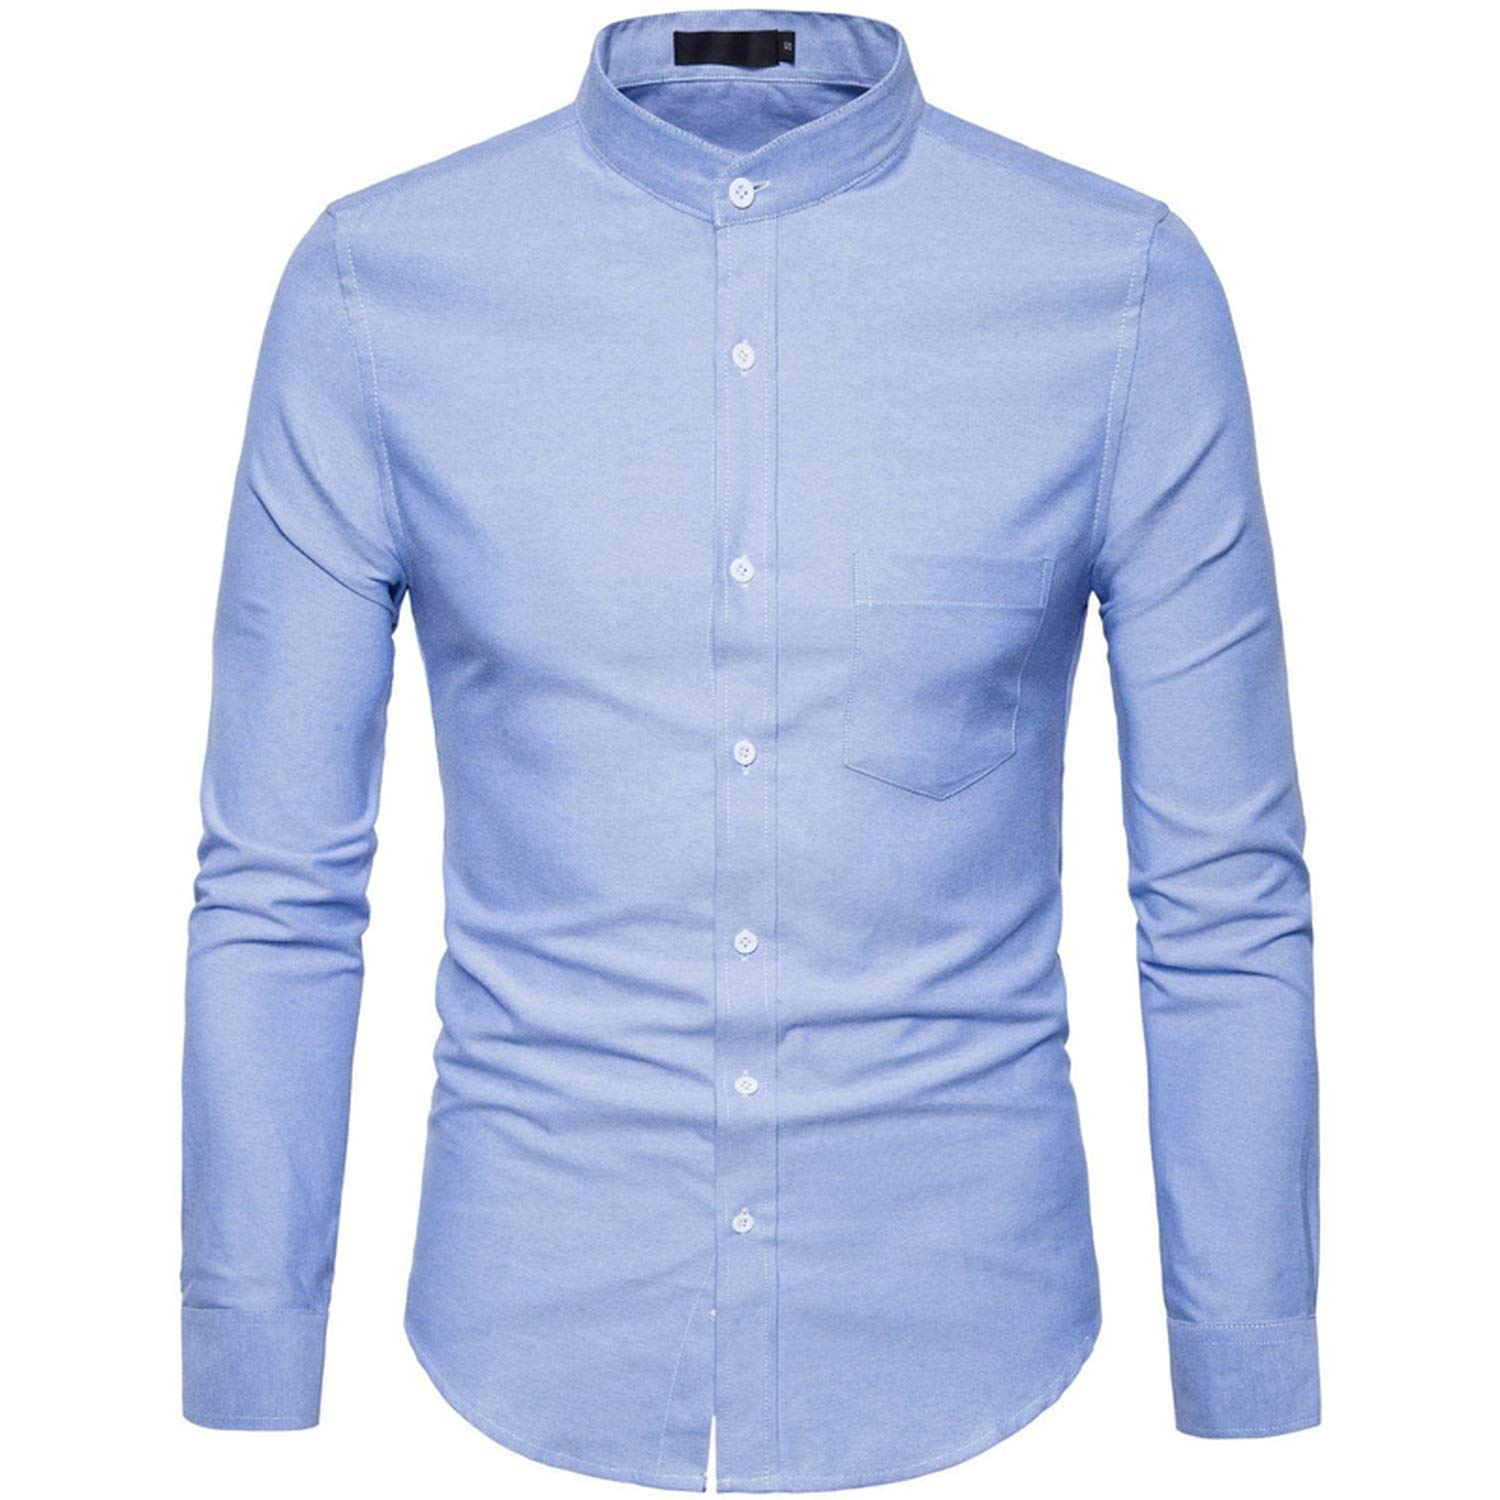 Oxford Cotton Mens Dress Shirts 2019 Spring New Stand Collar Casual Slim Fit Youth Style Male Clothing 6XL